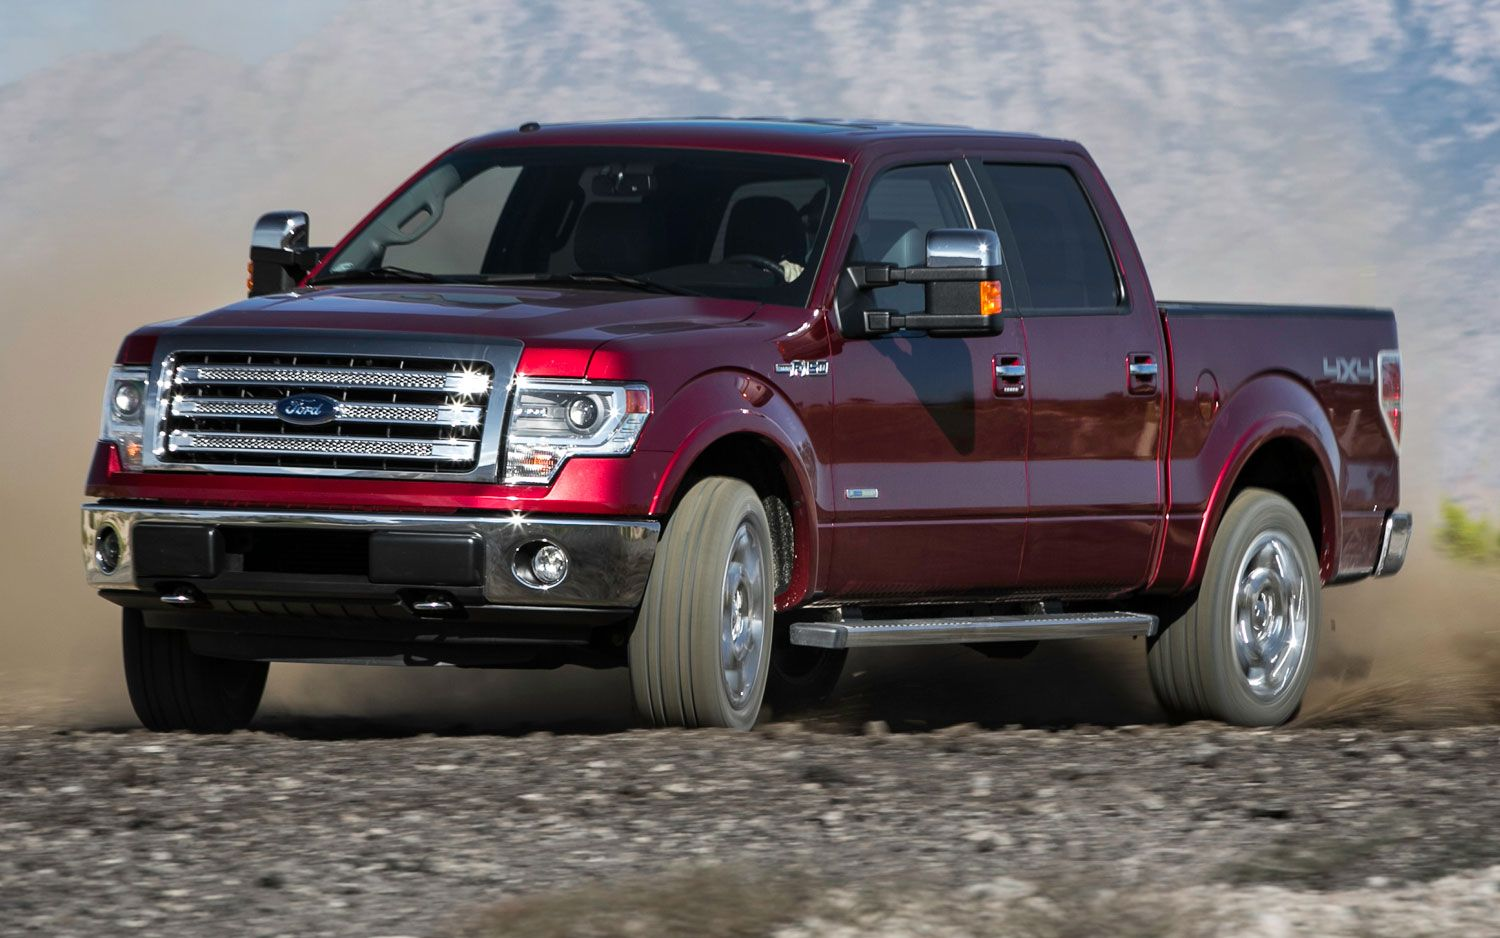 top rated trucks 2013 site:pinterest.com - 1000+ ideas about 2013 F150 on Pinterest 2014 Ford F150, Ford ...